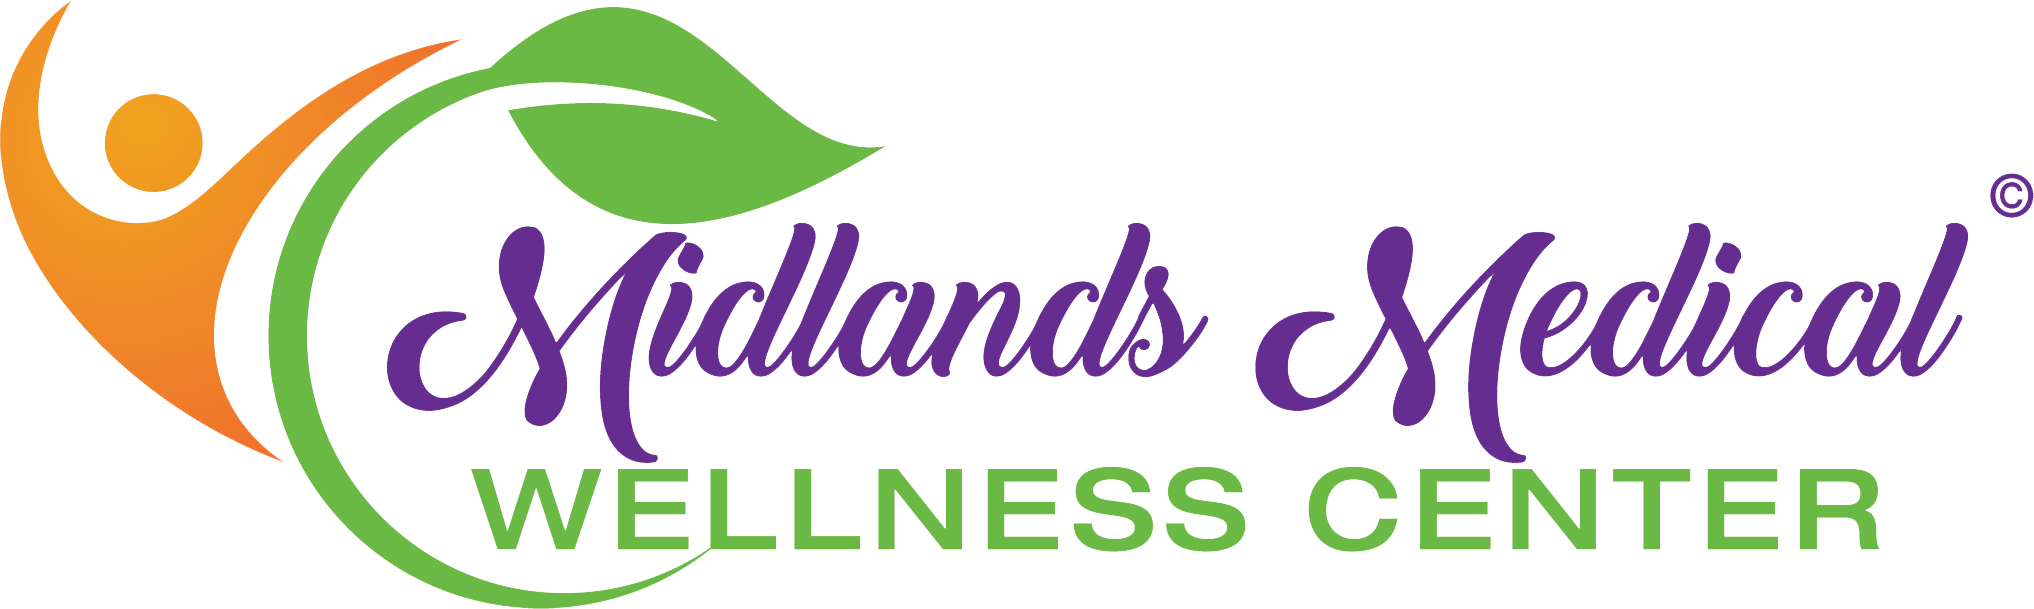 Midlands Medical Wellness Center - Dr. Rhoe